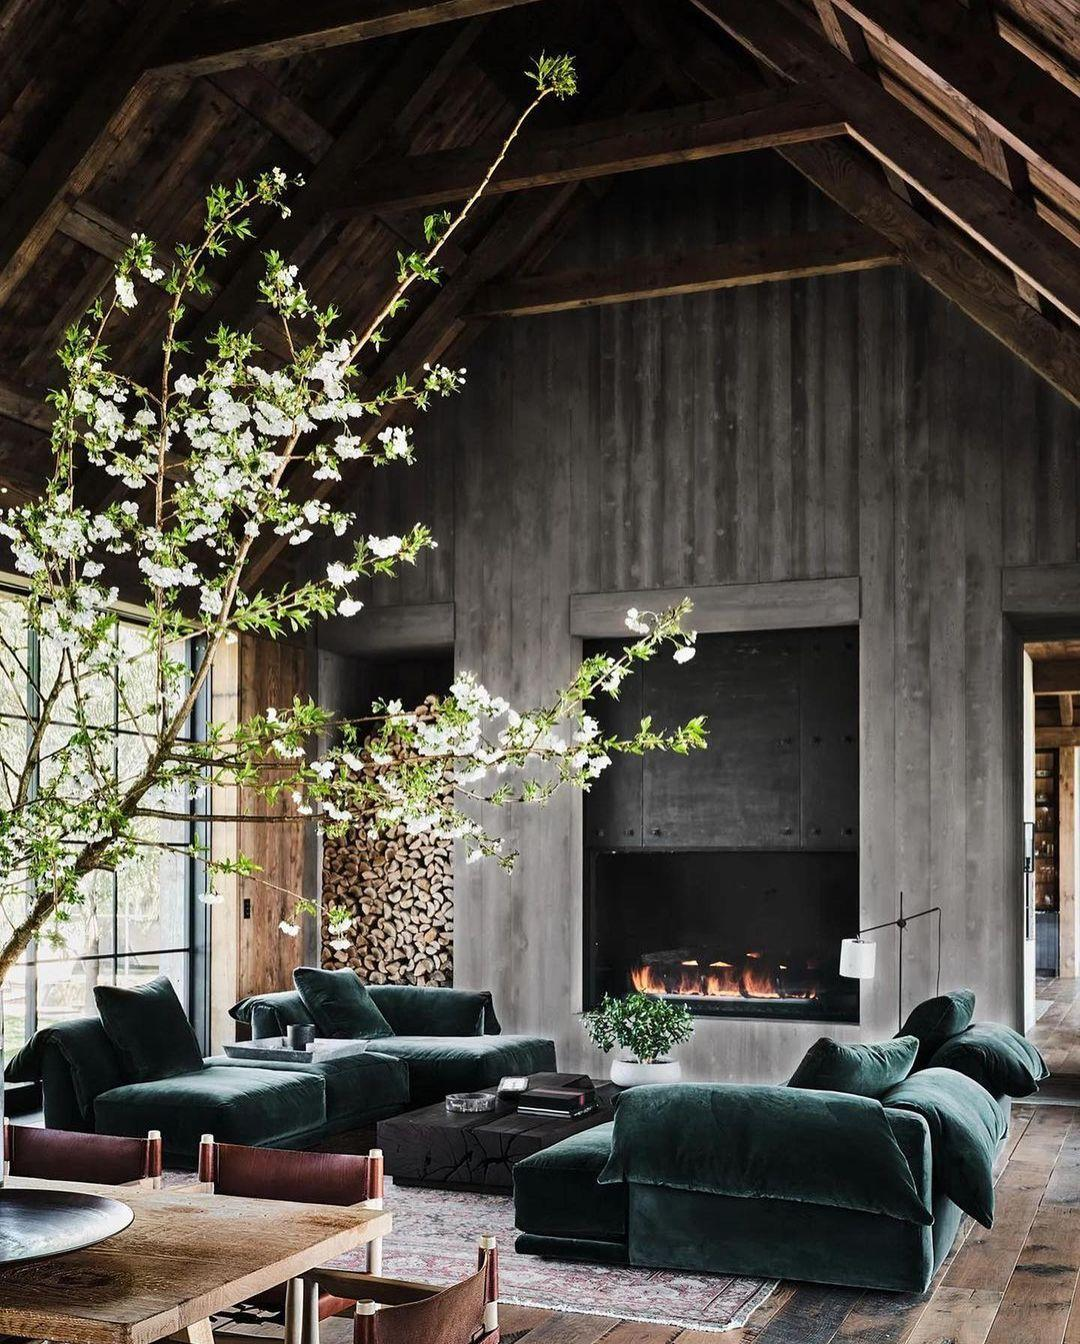 They wanted their house to look like a barn but feel modern.